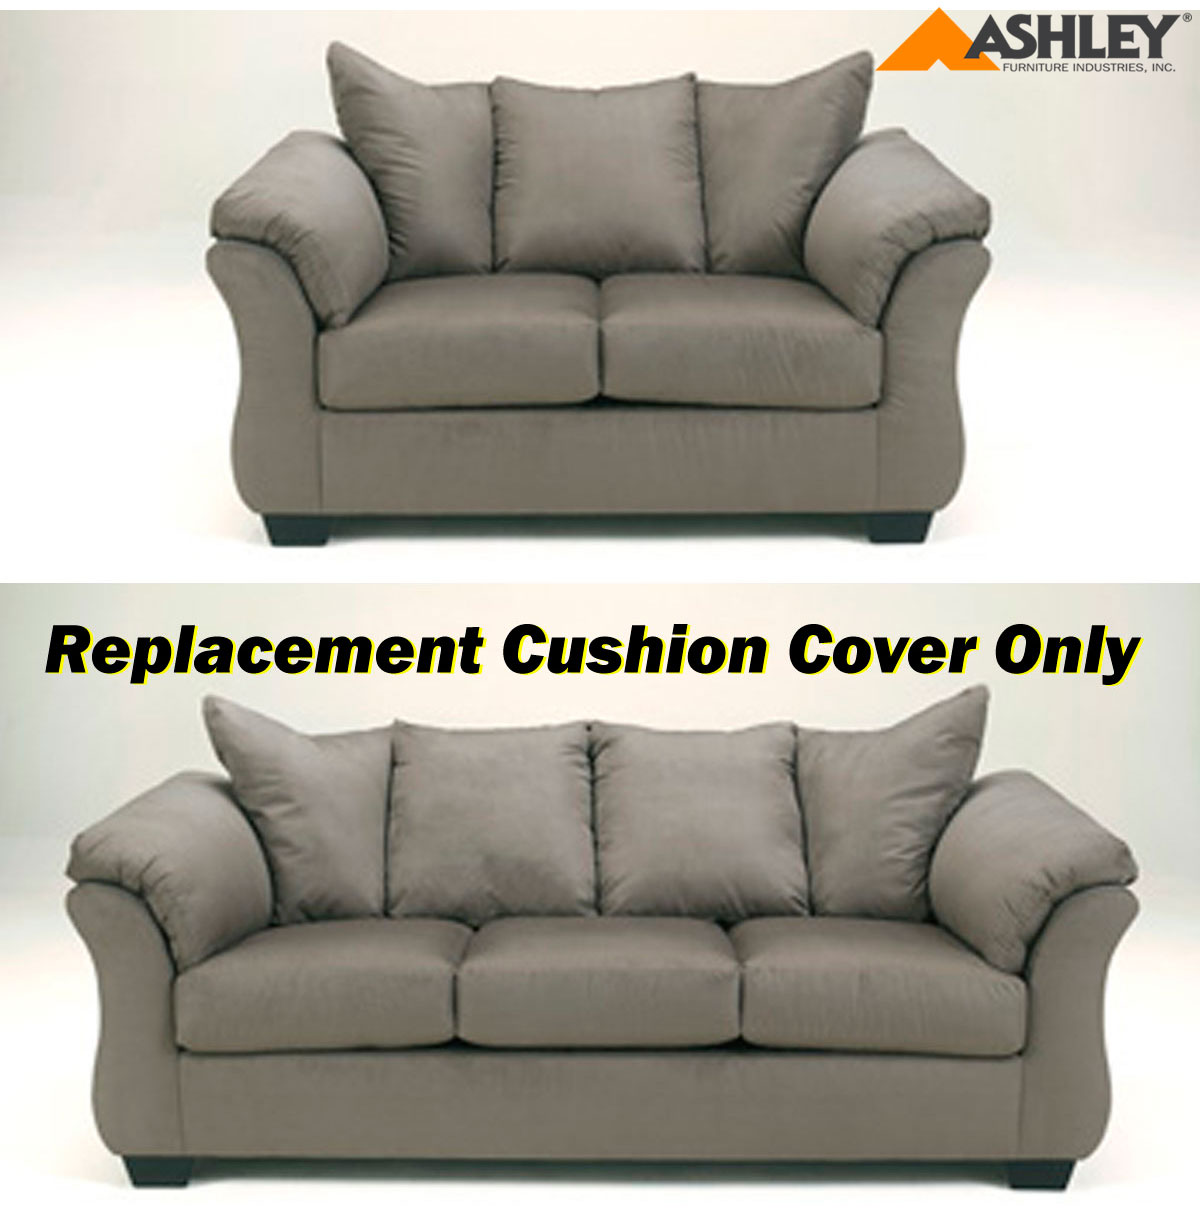 Ashley darcy replacement cushion cover only 7500538 or 7500535 cobblestone Loveseat cushion covers